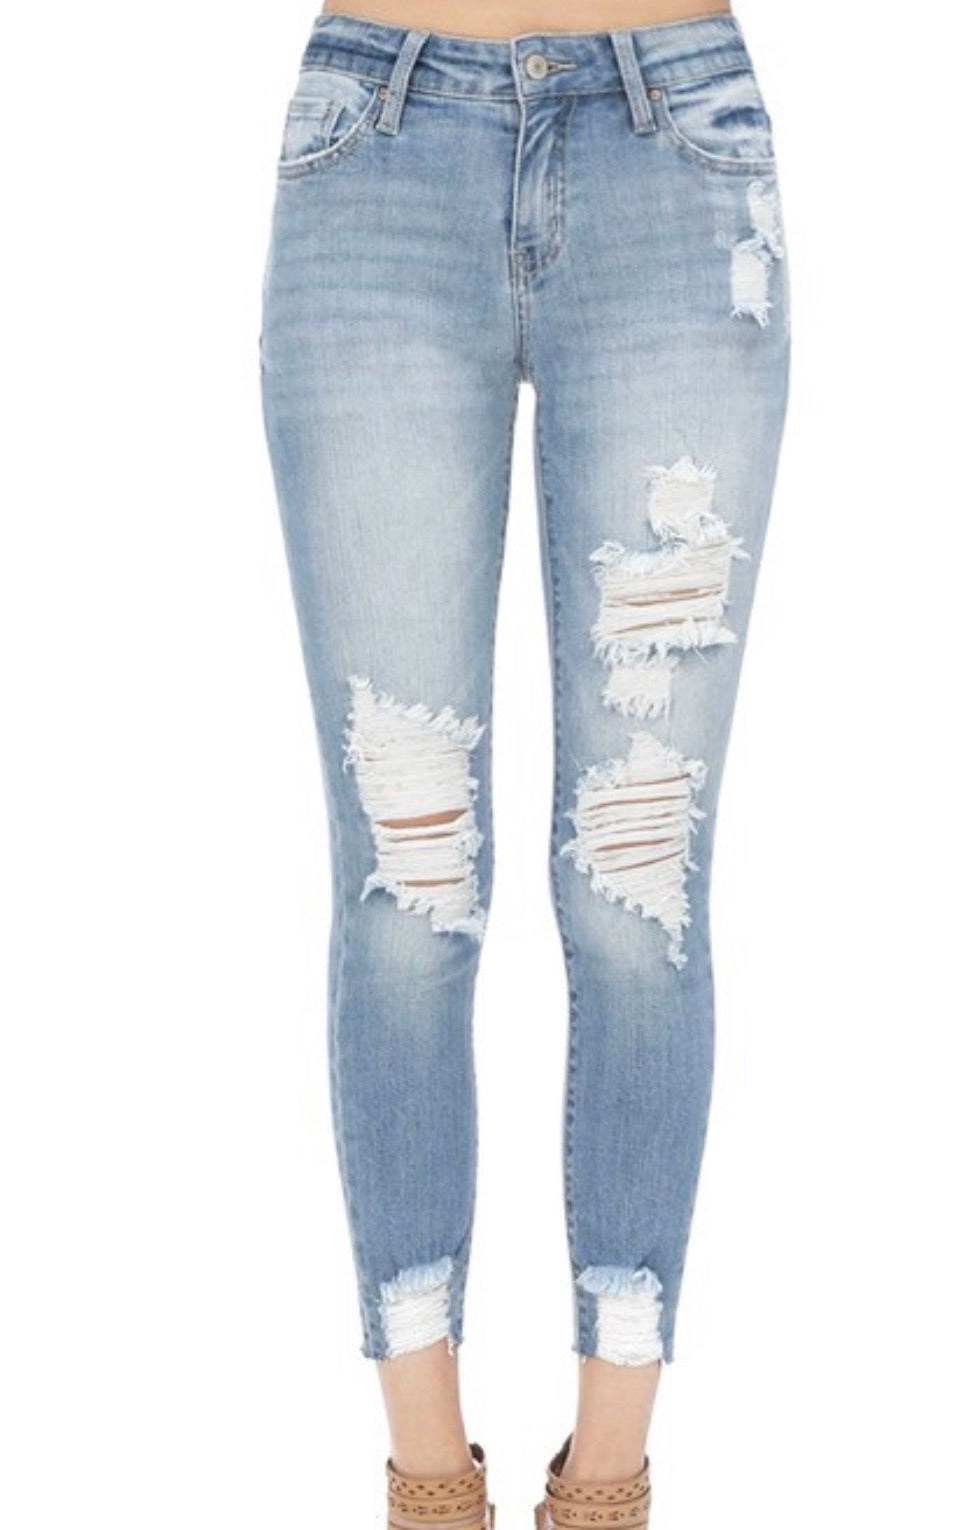 Almost Girlfriend distressed denim